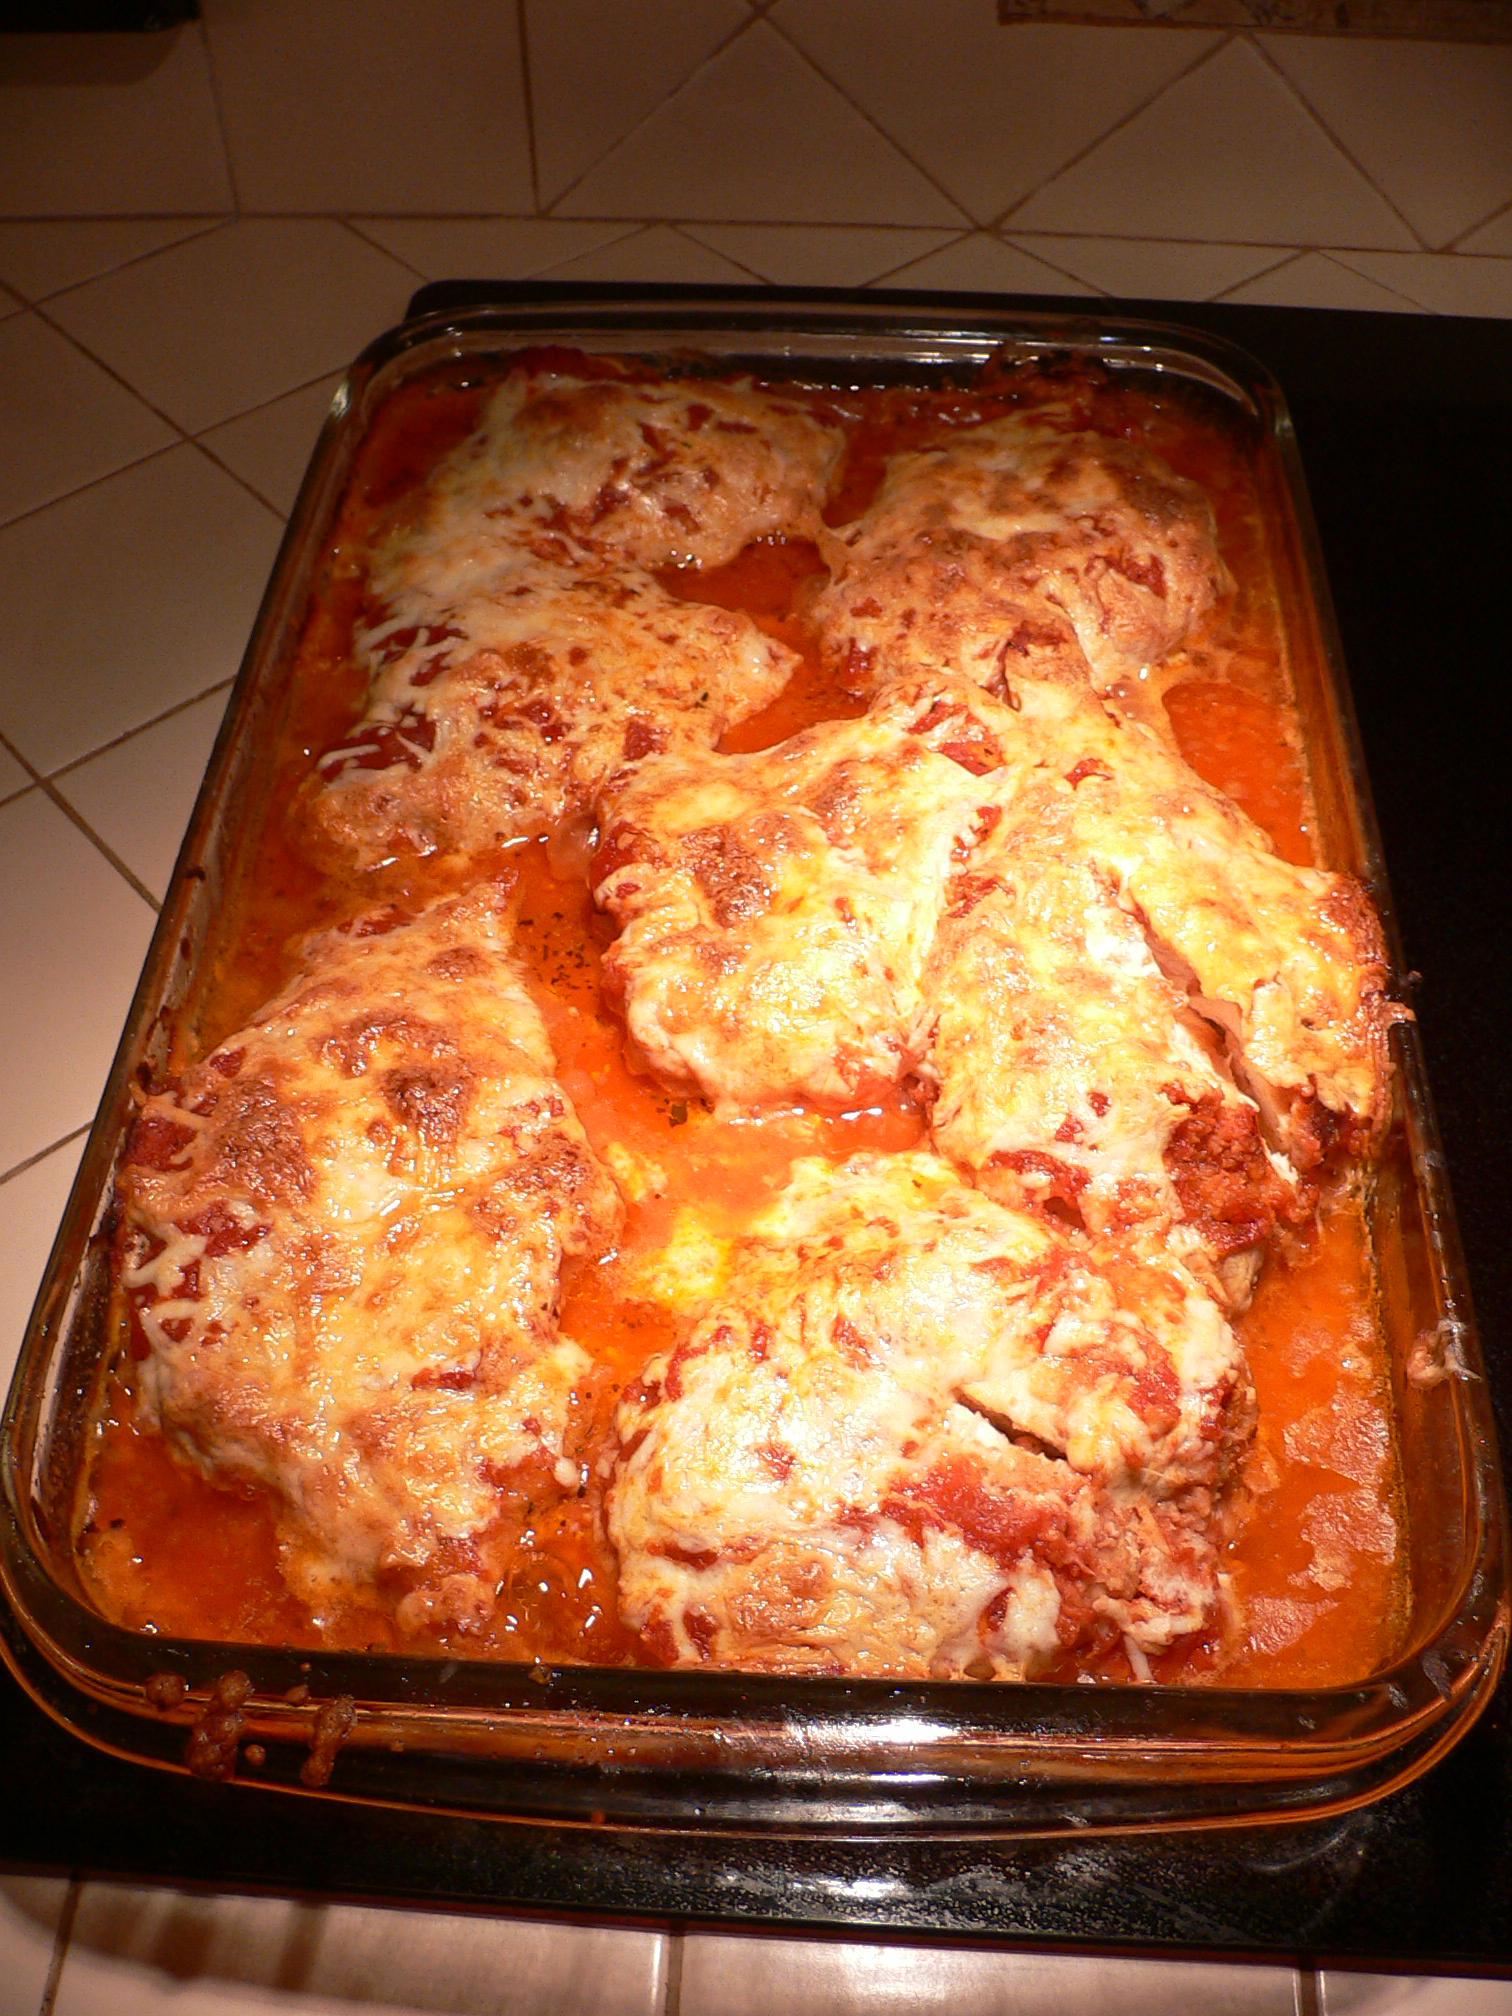 File:Chicken parmesan.jpg - Wikipedia, the free encyclopedia